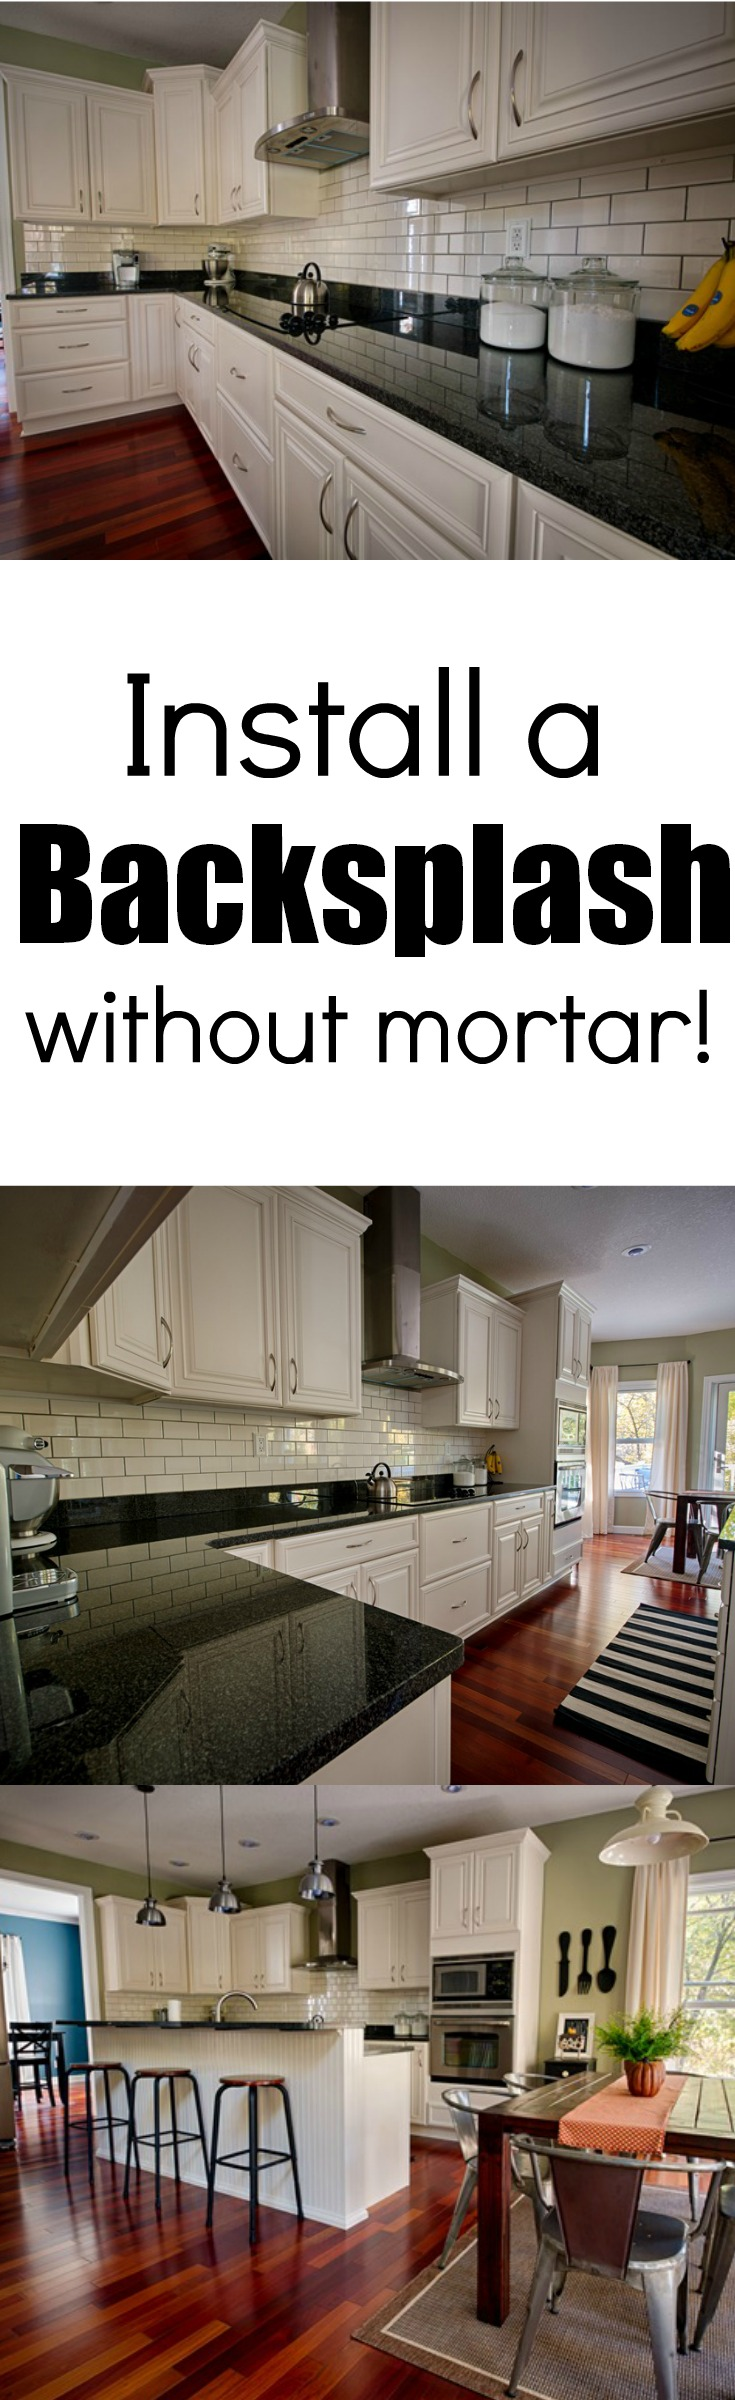 Install a backsplash.jpg